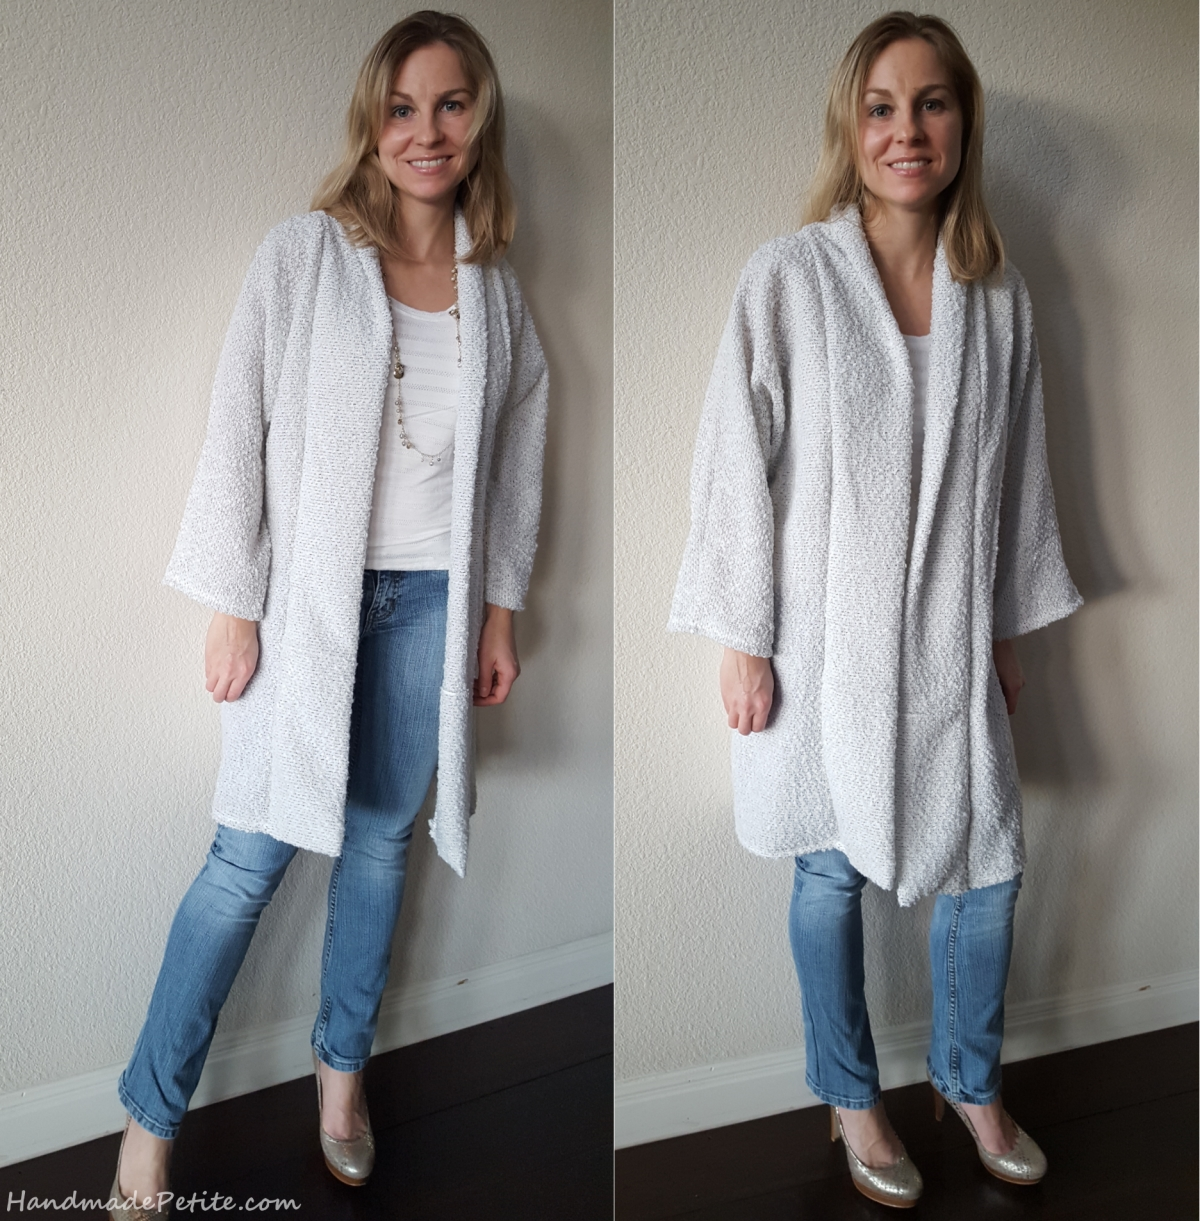 Sewing McCalls M6802 long sweater in white boucle